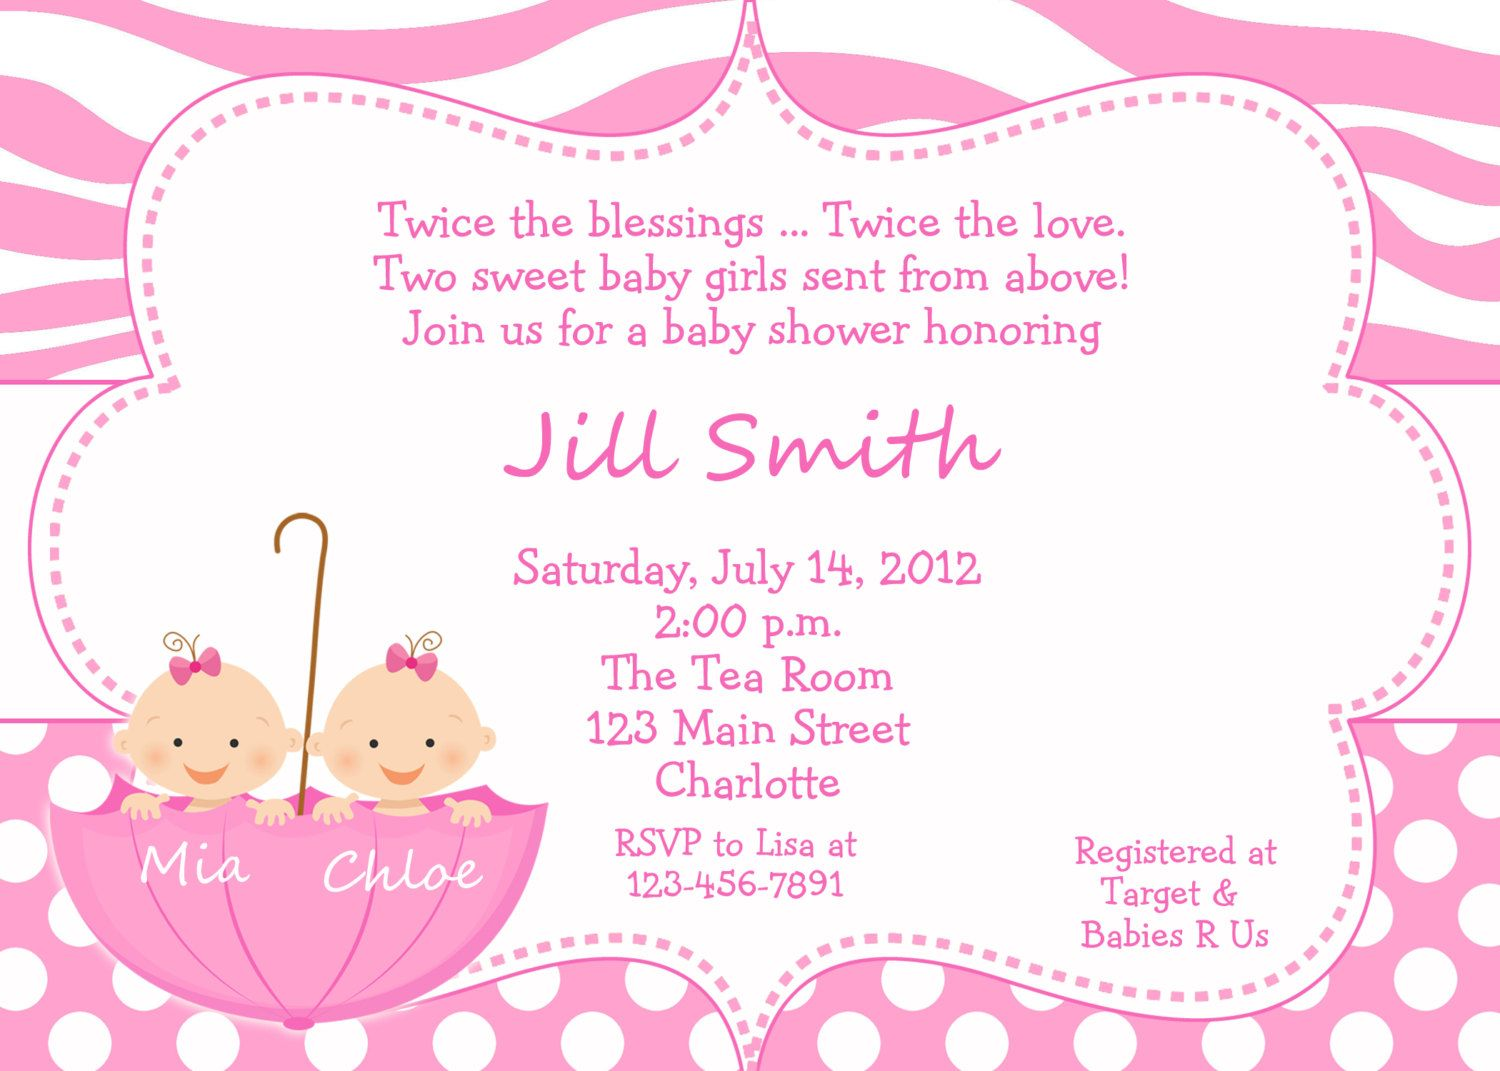 baby shower invitations baby shower invitations pink and white scheme card background decorating cute baby